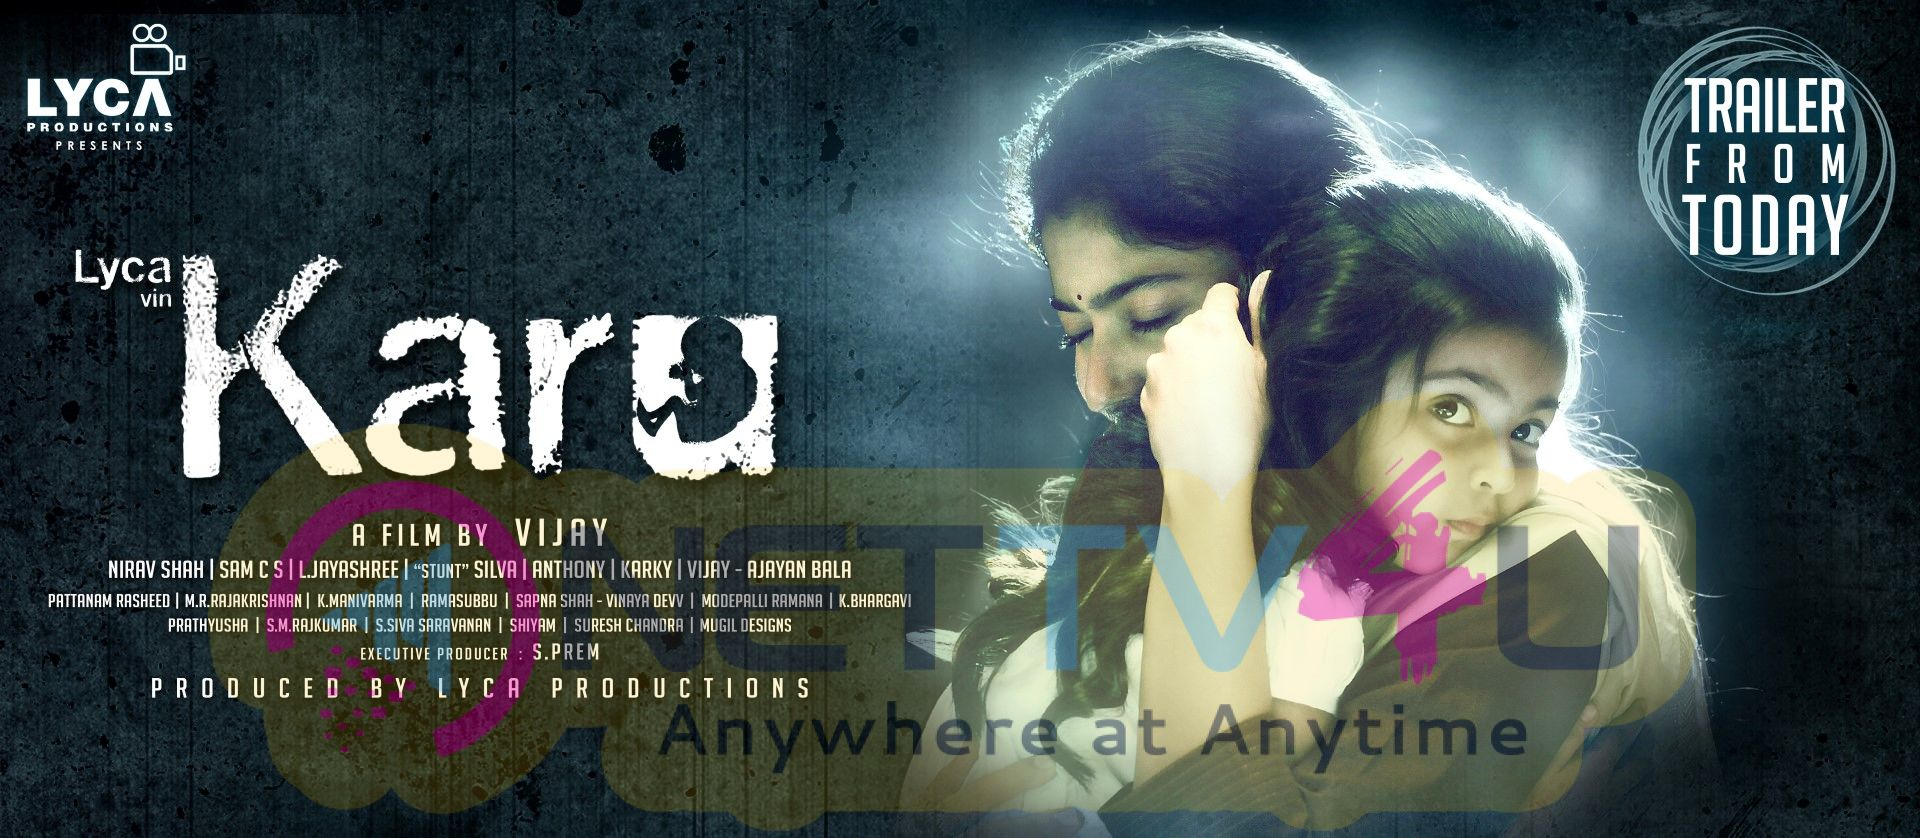 Karu Tamil Movie Trailer From Today Posters